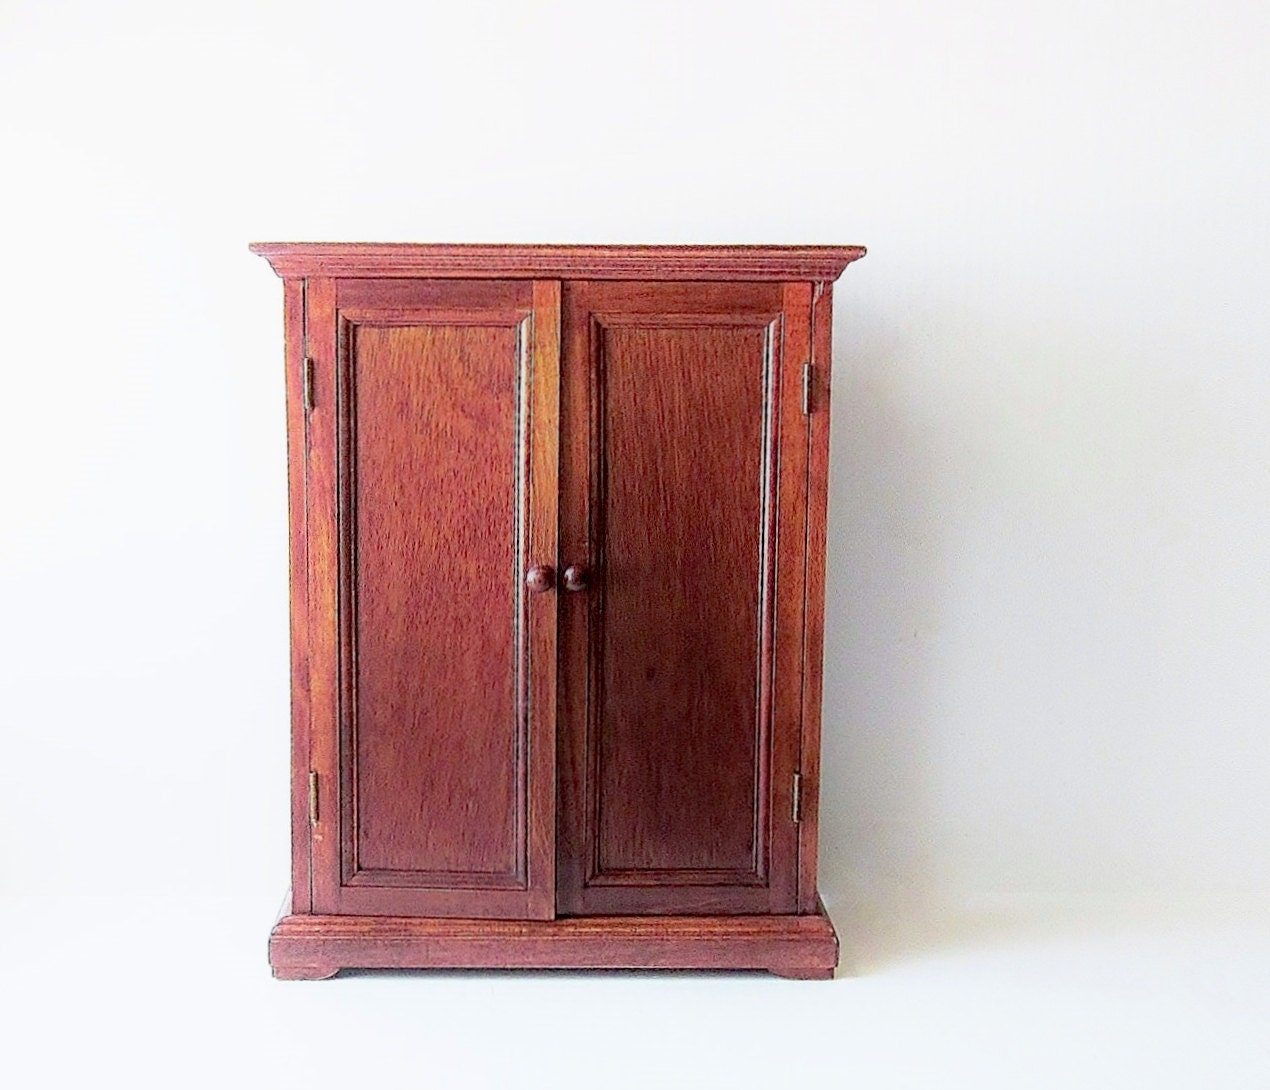 Vintage wood doll armoire wardrobe american heirloom